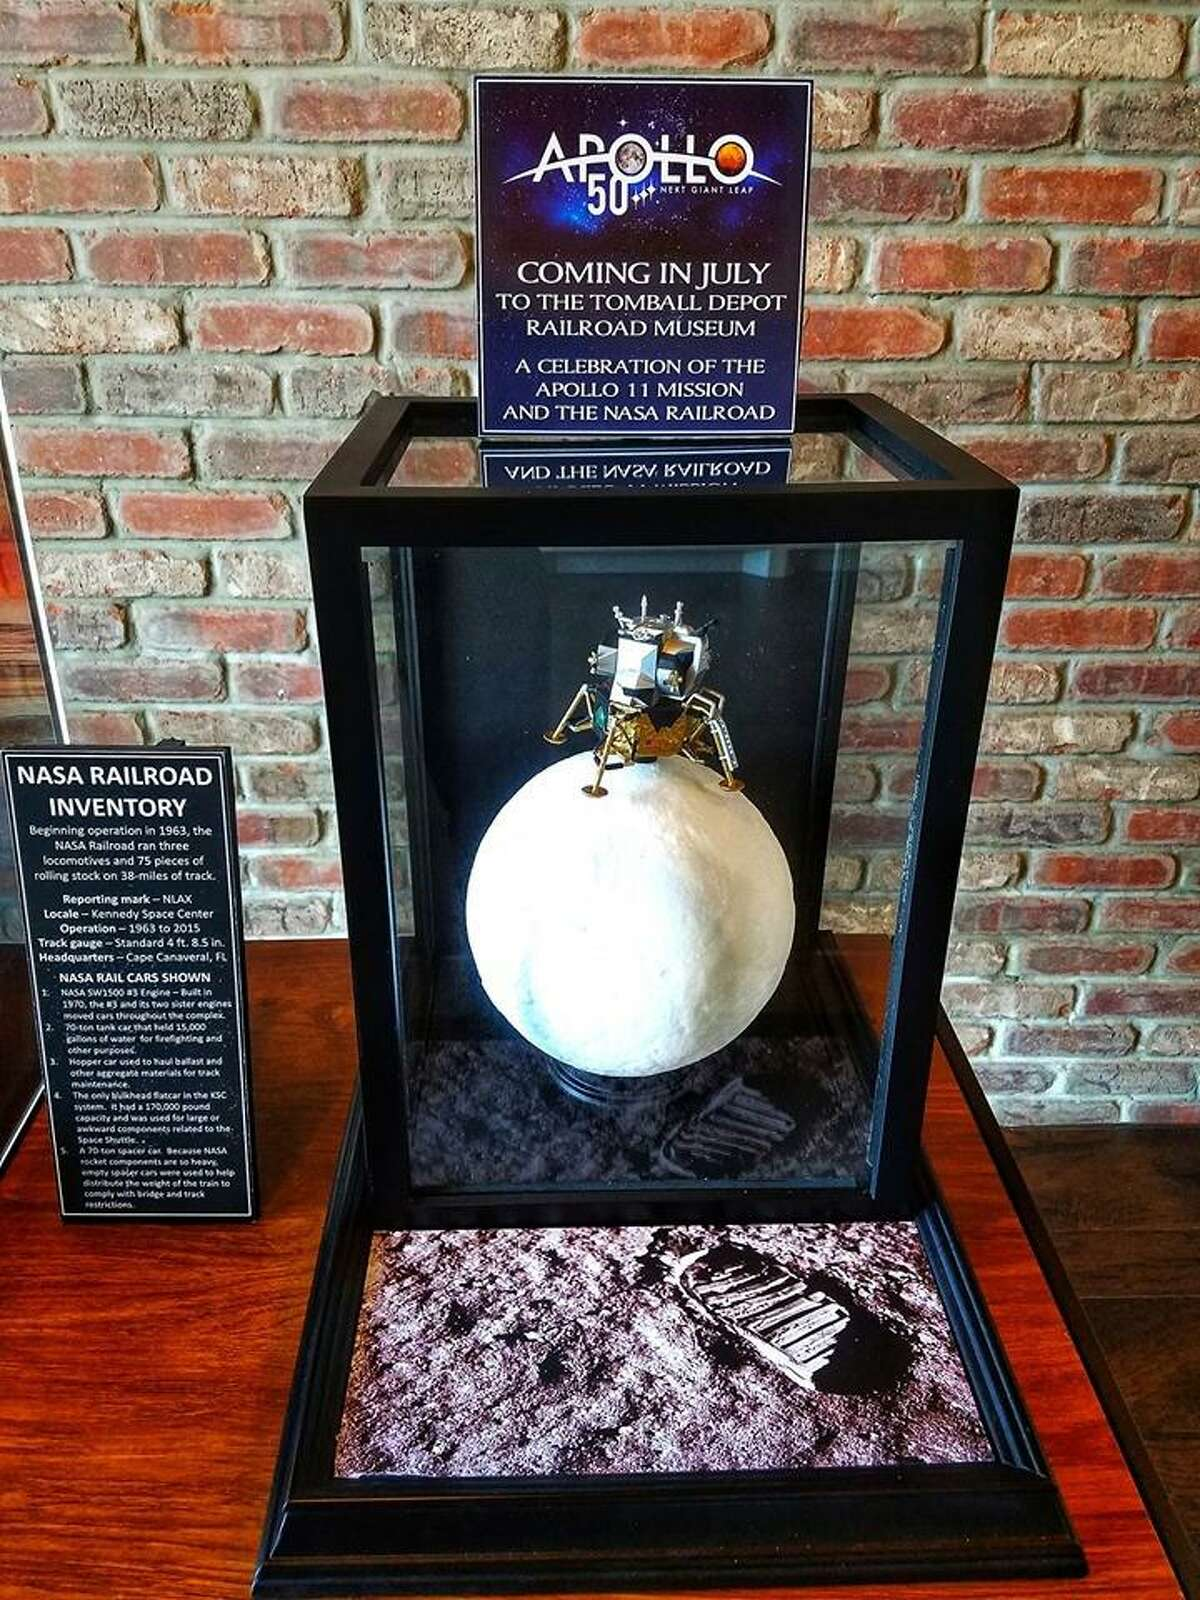 A diorama on display at the Tomball Railroad Depot Museum features a replica of Apollo 11's lunar landing, which occurred on July 20, 1969.